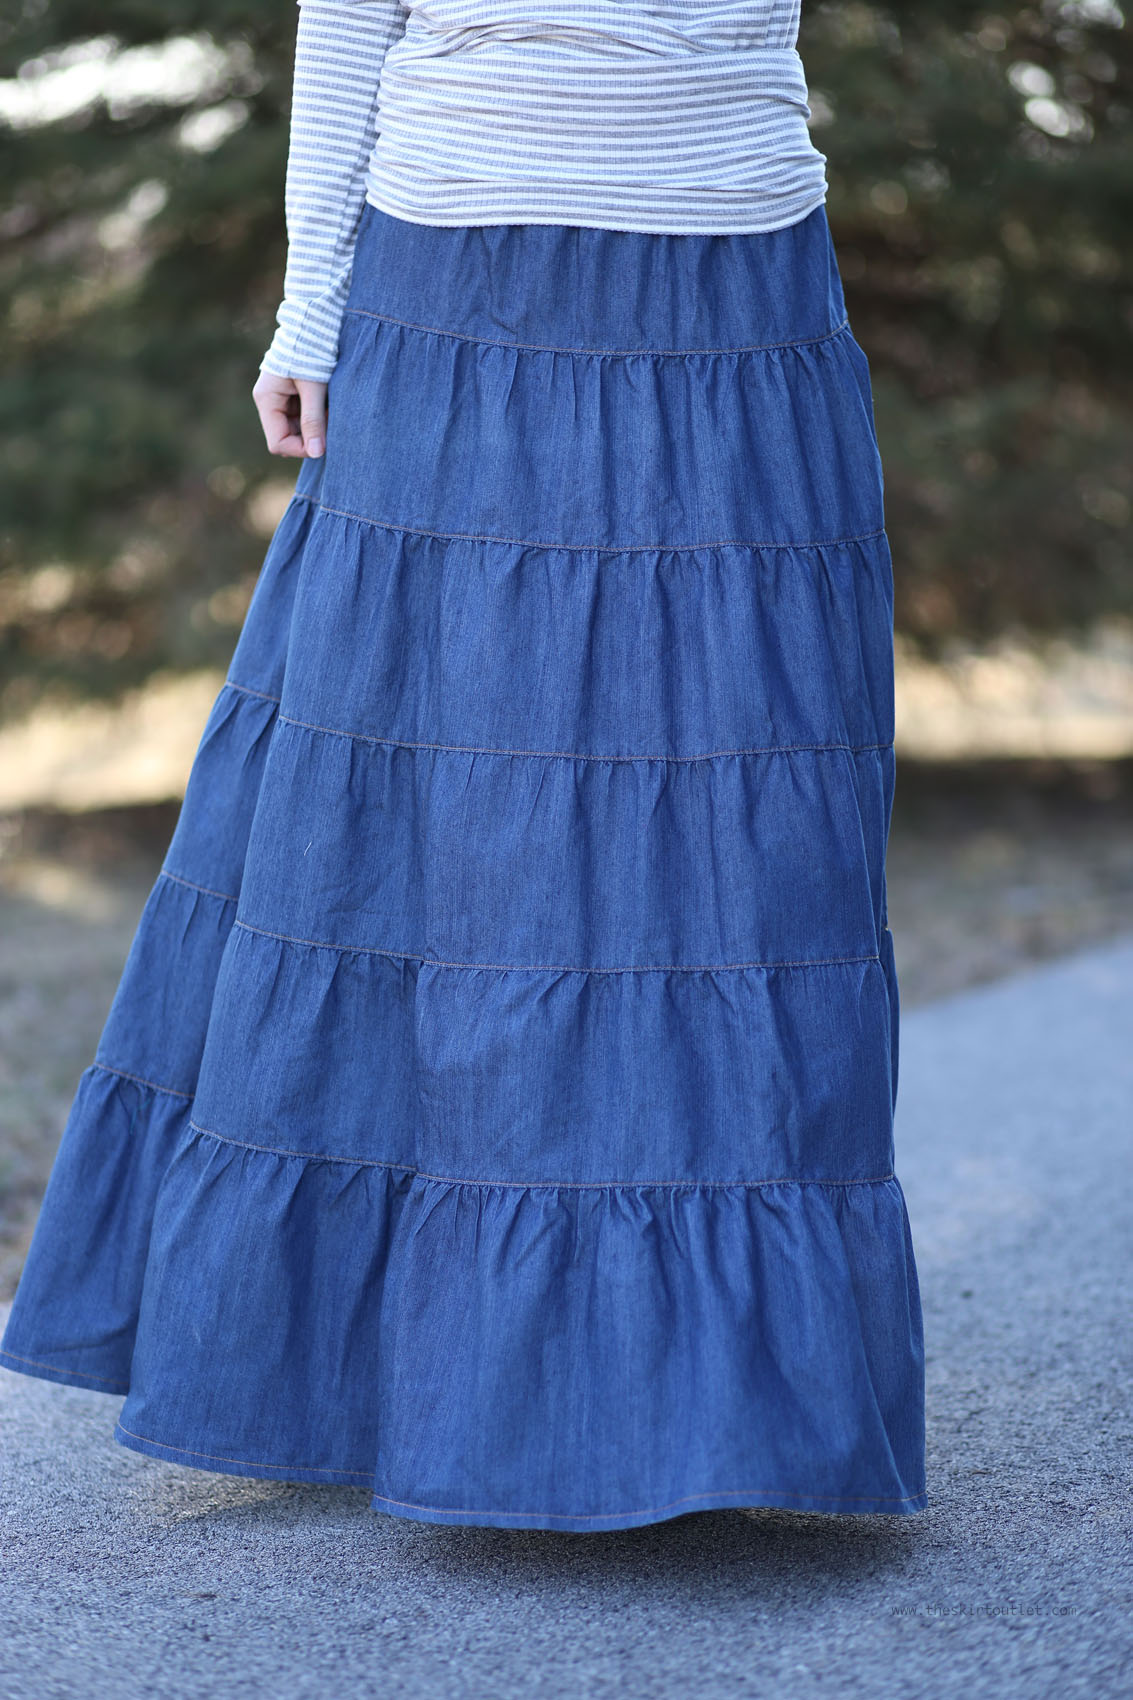 'Deep Beauty' Dark Denim Modest Skirt | Long Jean Skirt ... |Western Long Denim Skirts Modest